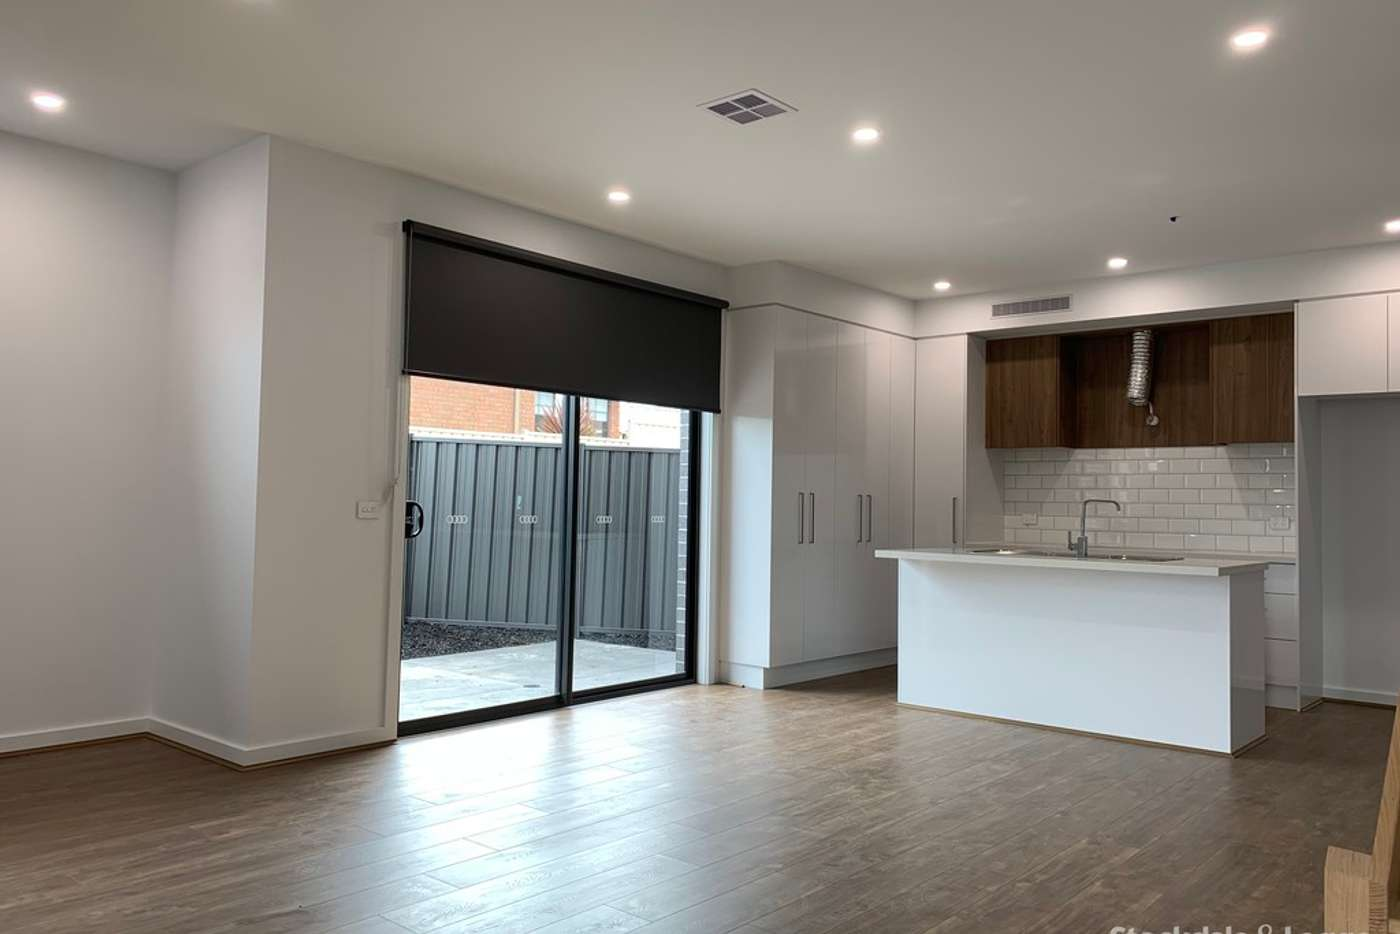 Sixth view of Homely house listing, 1/22 Shadforth Street, Westmeadows VIC 3049